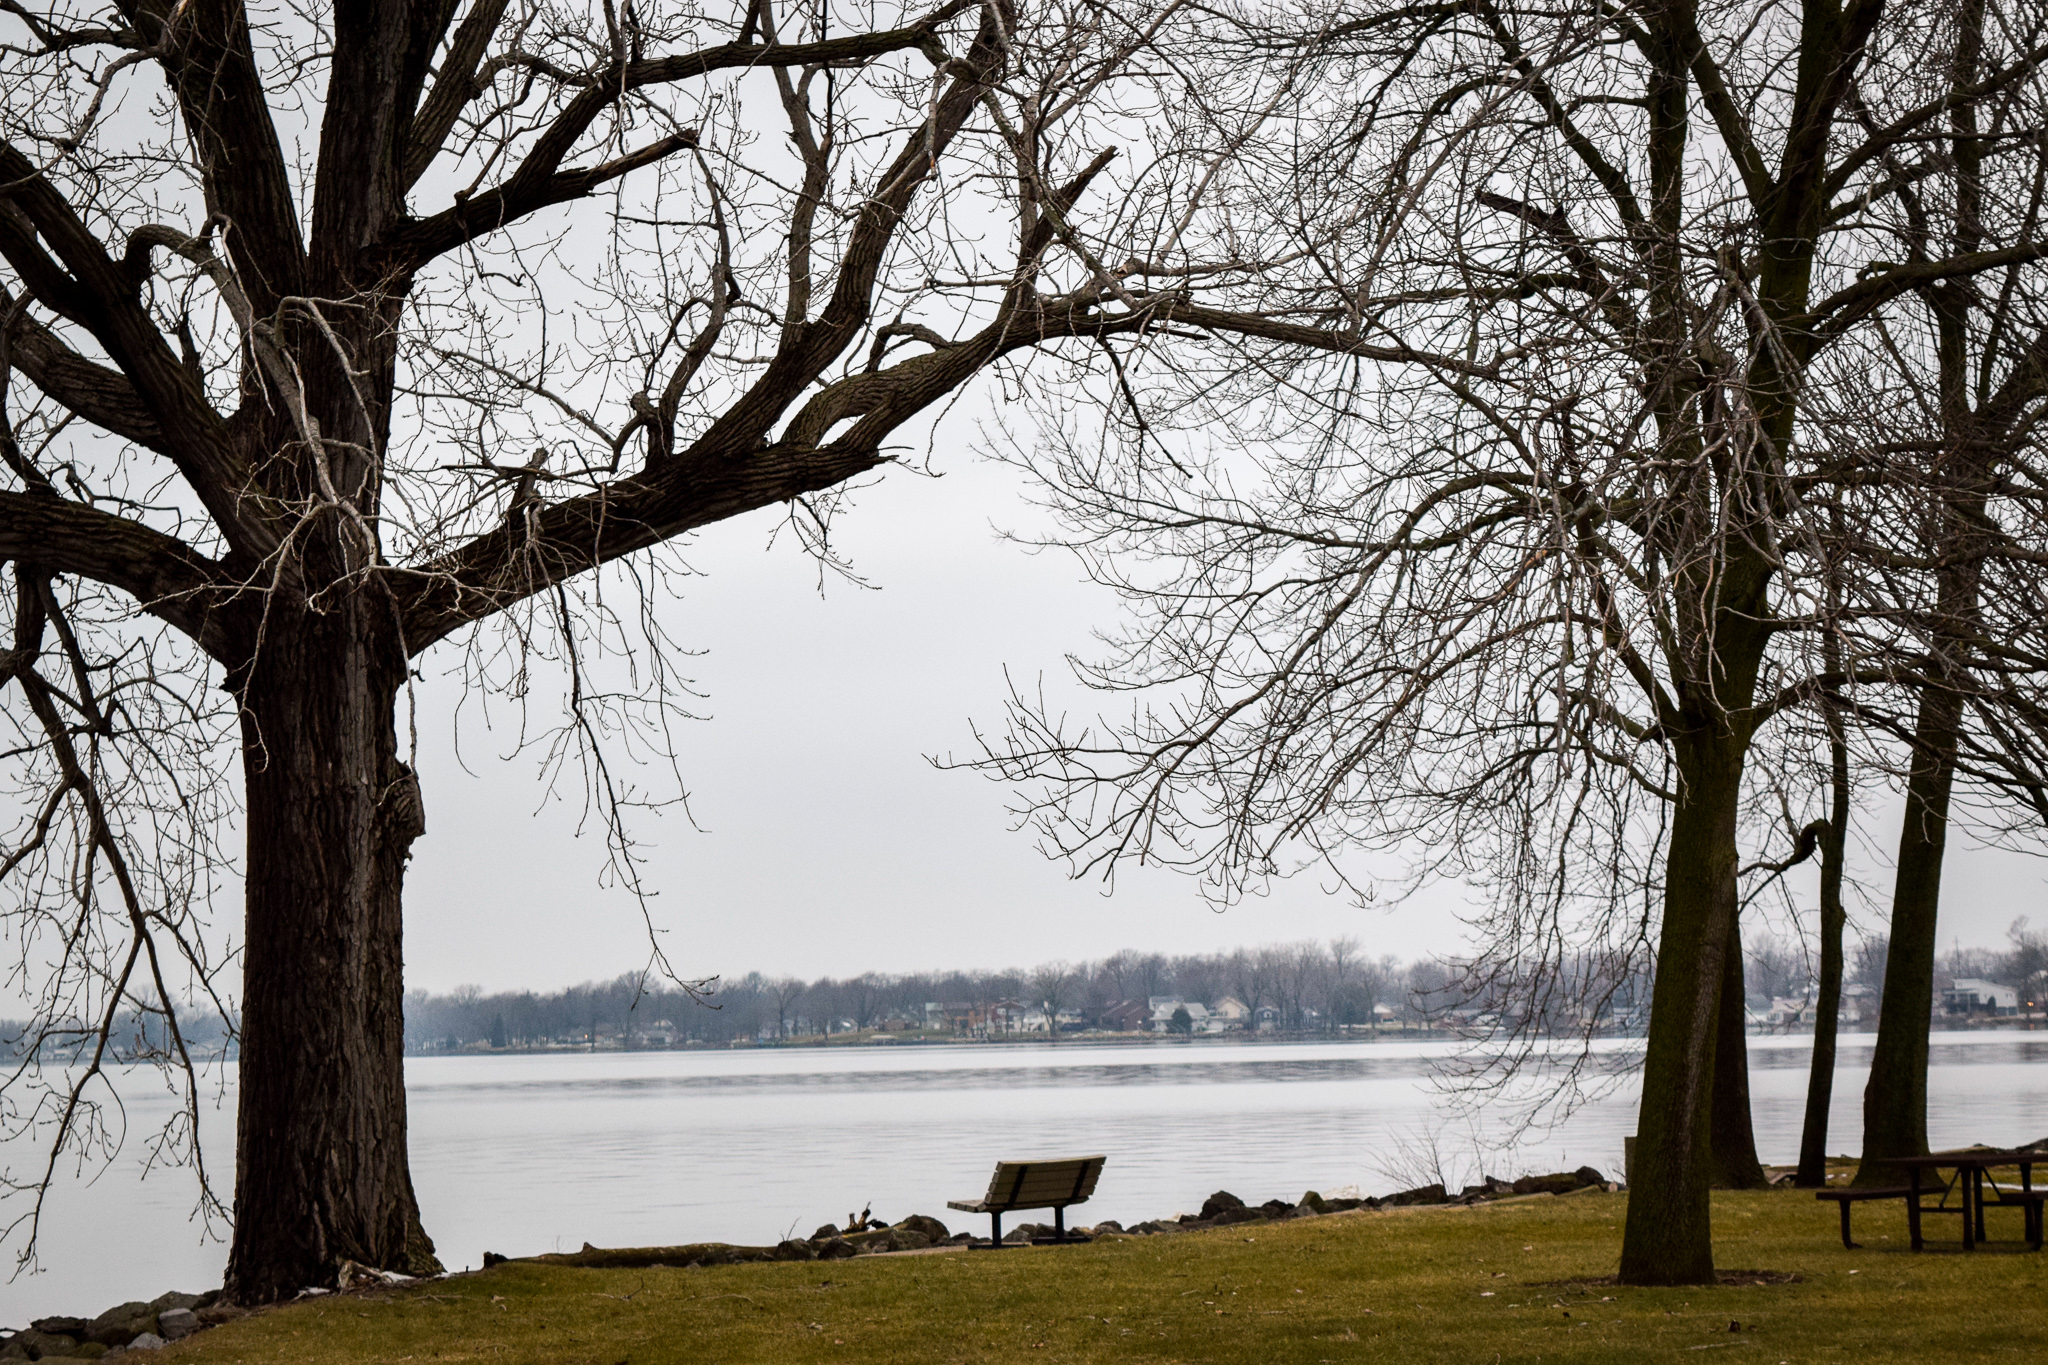 Local man found in lake | Photo by Jessica Fugett | The Wright State Guardian